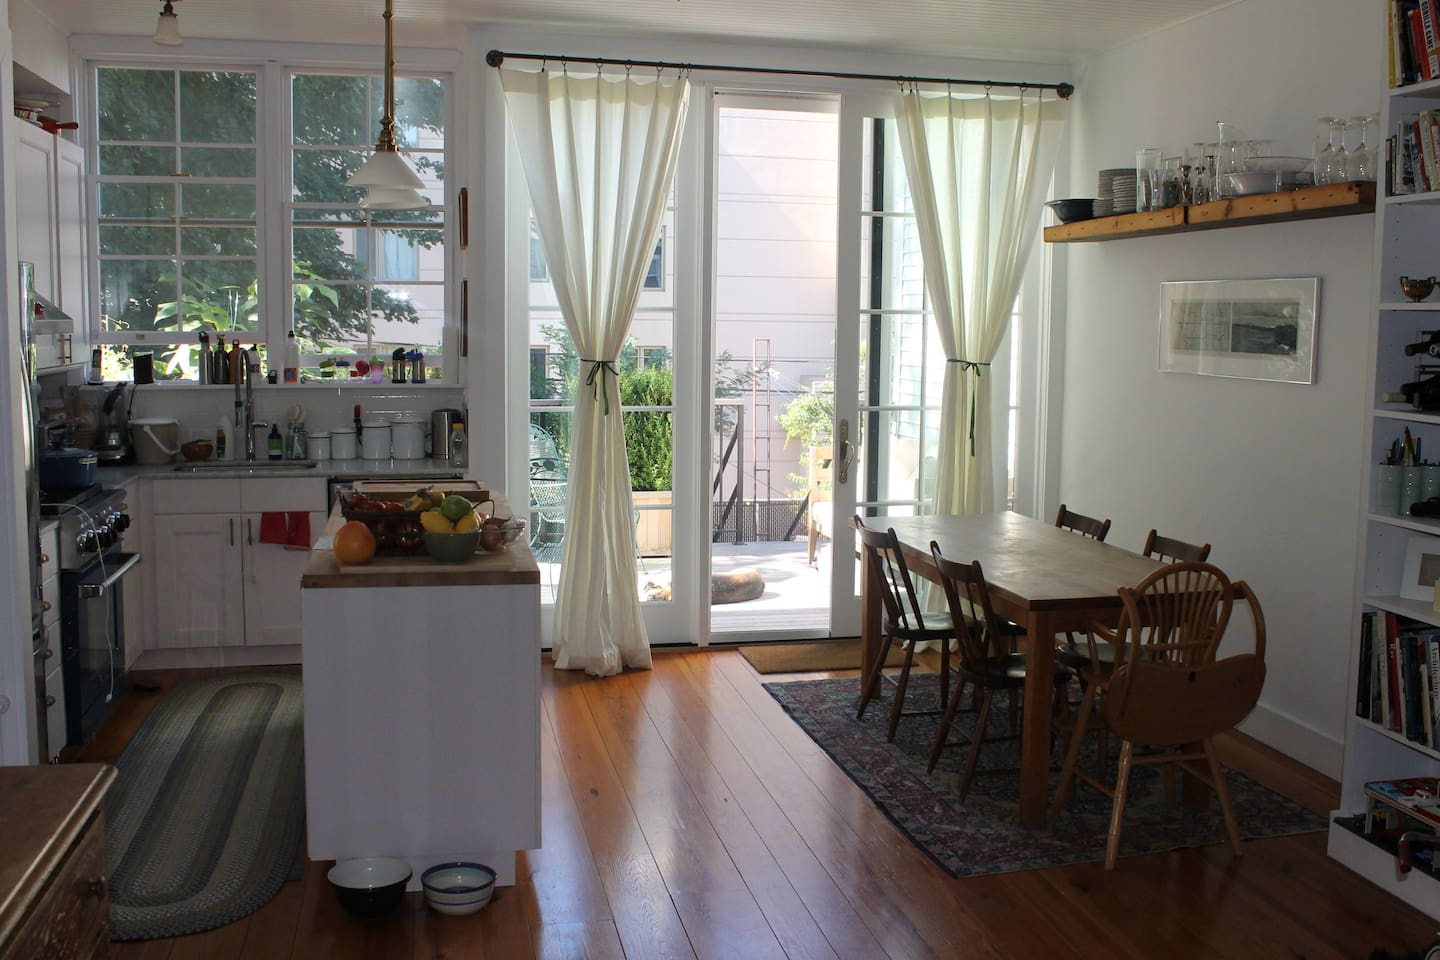 Kitchen, dining room and deck